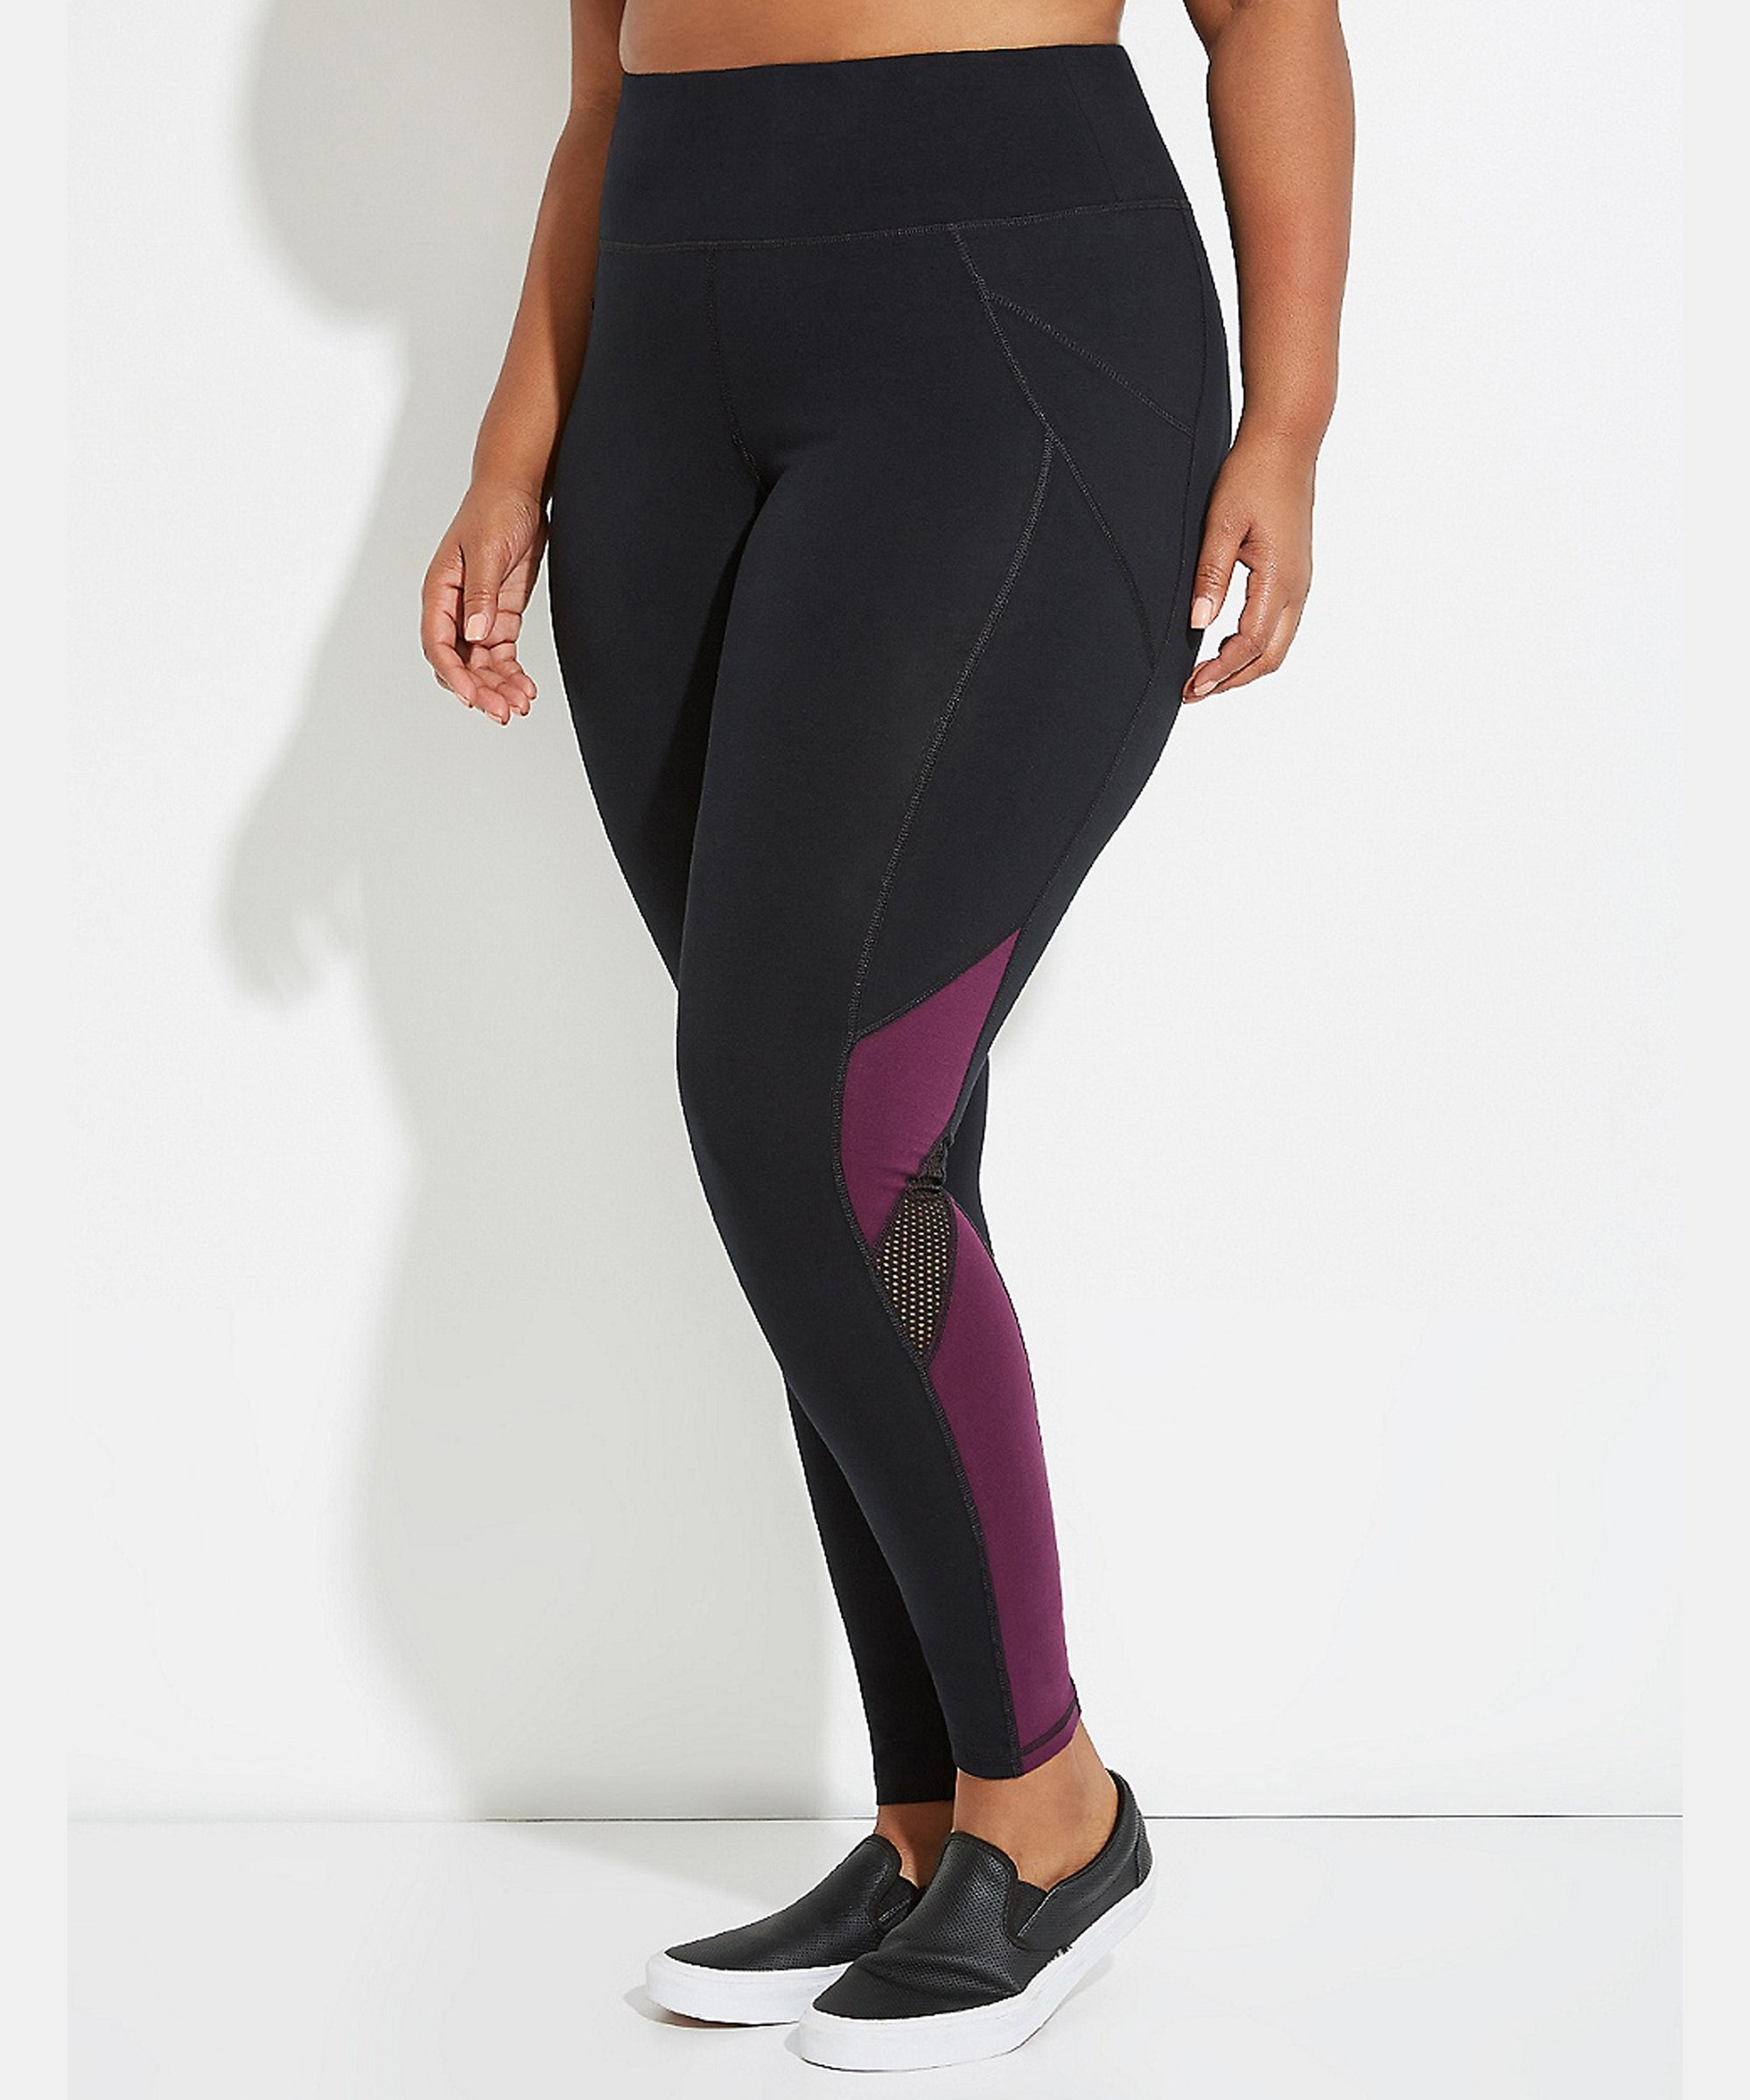 Slipping into a pair of our plus-size leggings is the perfect style solution for the gal on the go! Promising comfort, cuteness, and even a bit of quirk, ModCloth's collection of extended-size bottoms are best paired with a busy schedule and a go-getter attitude.